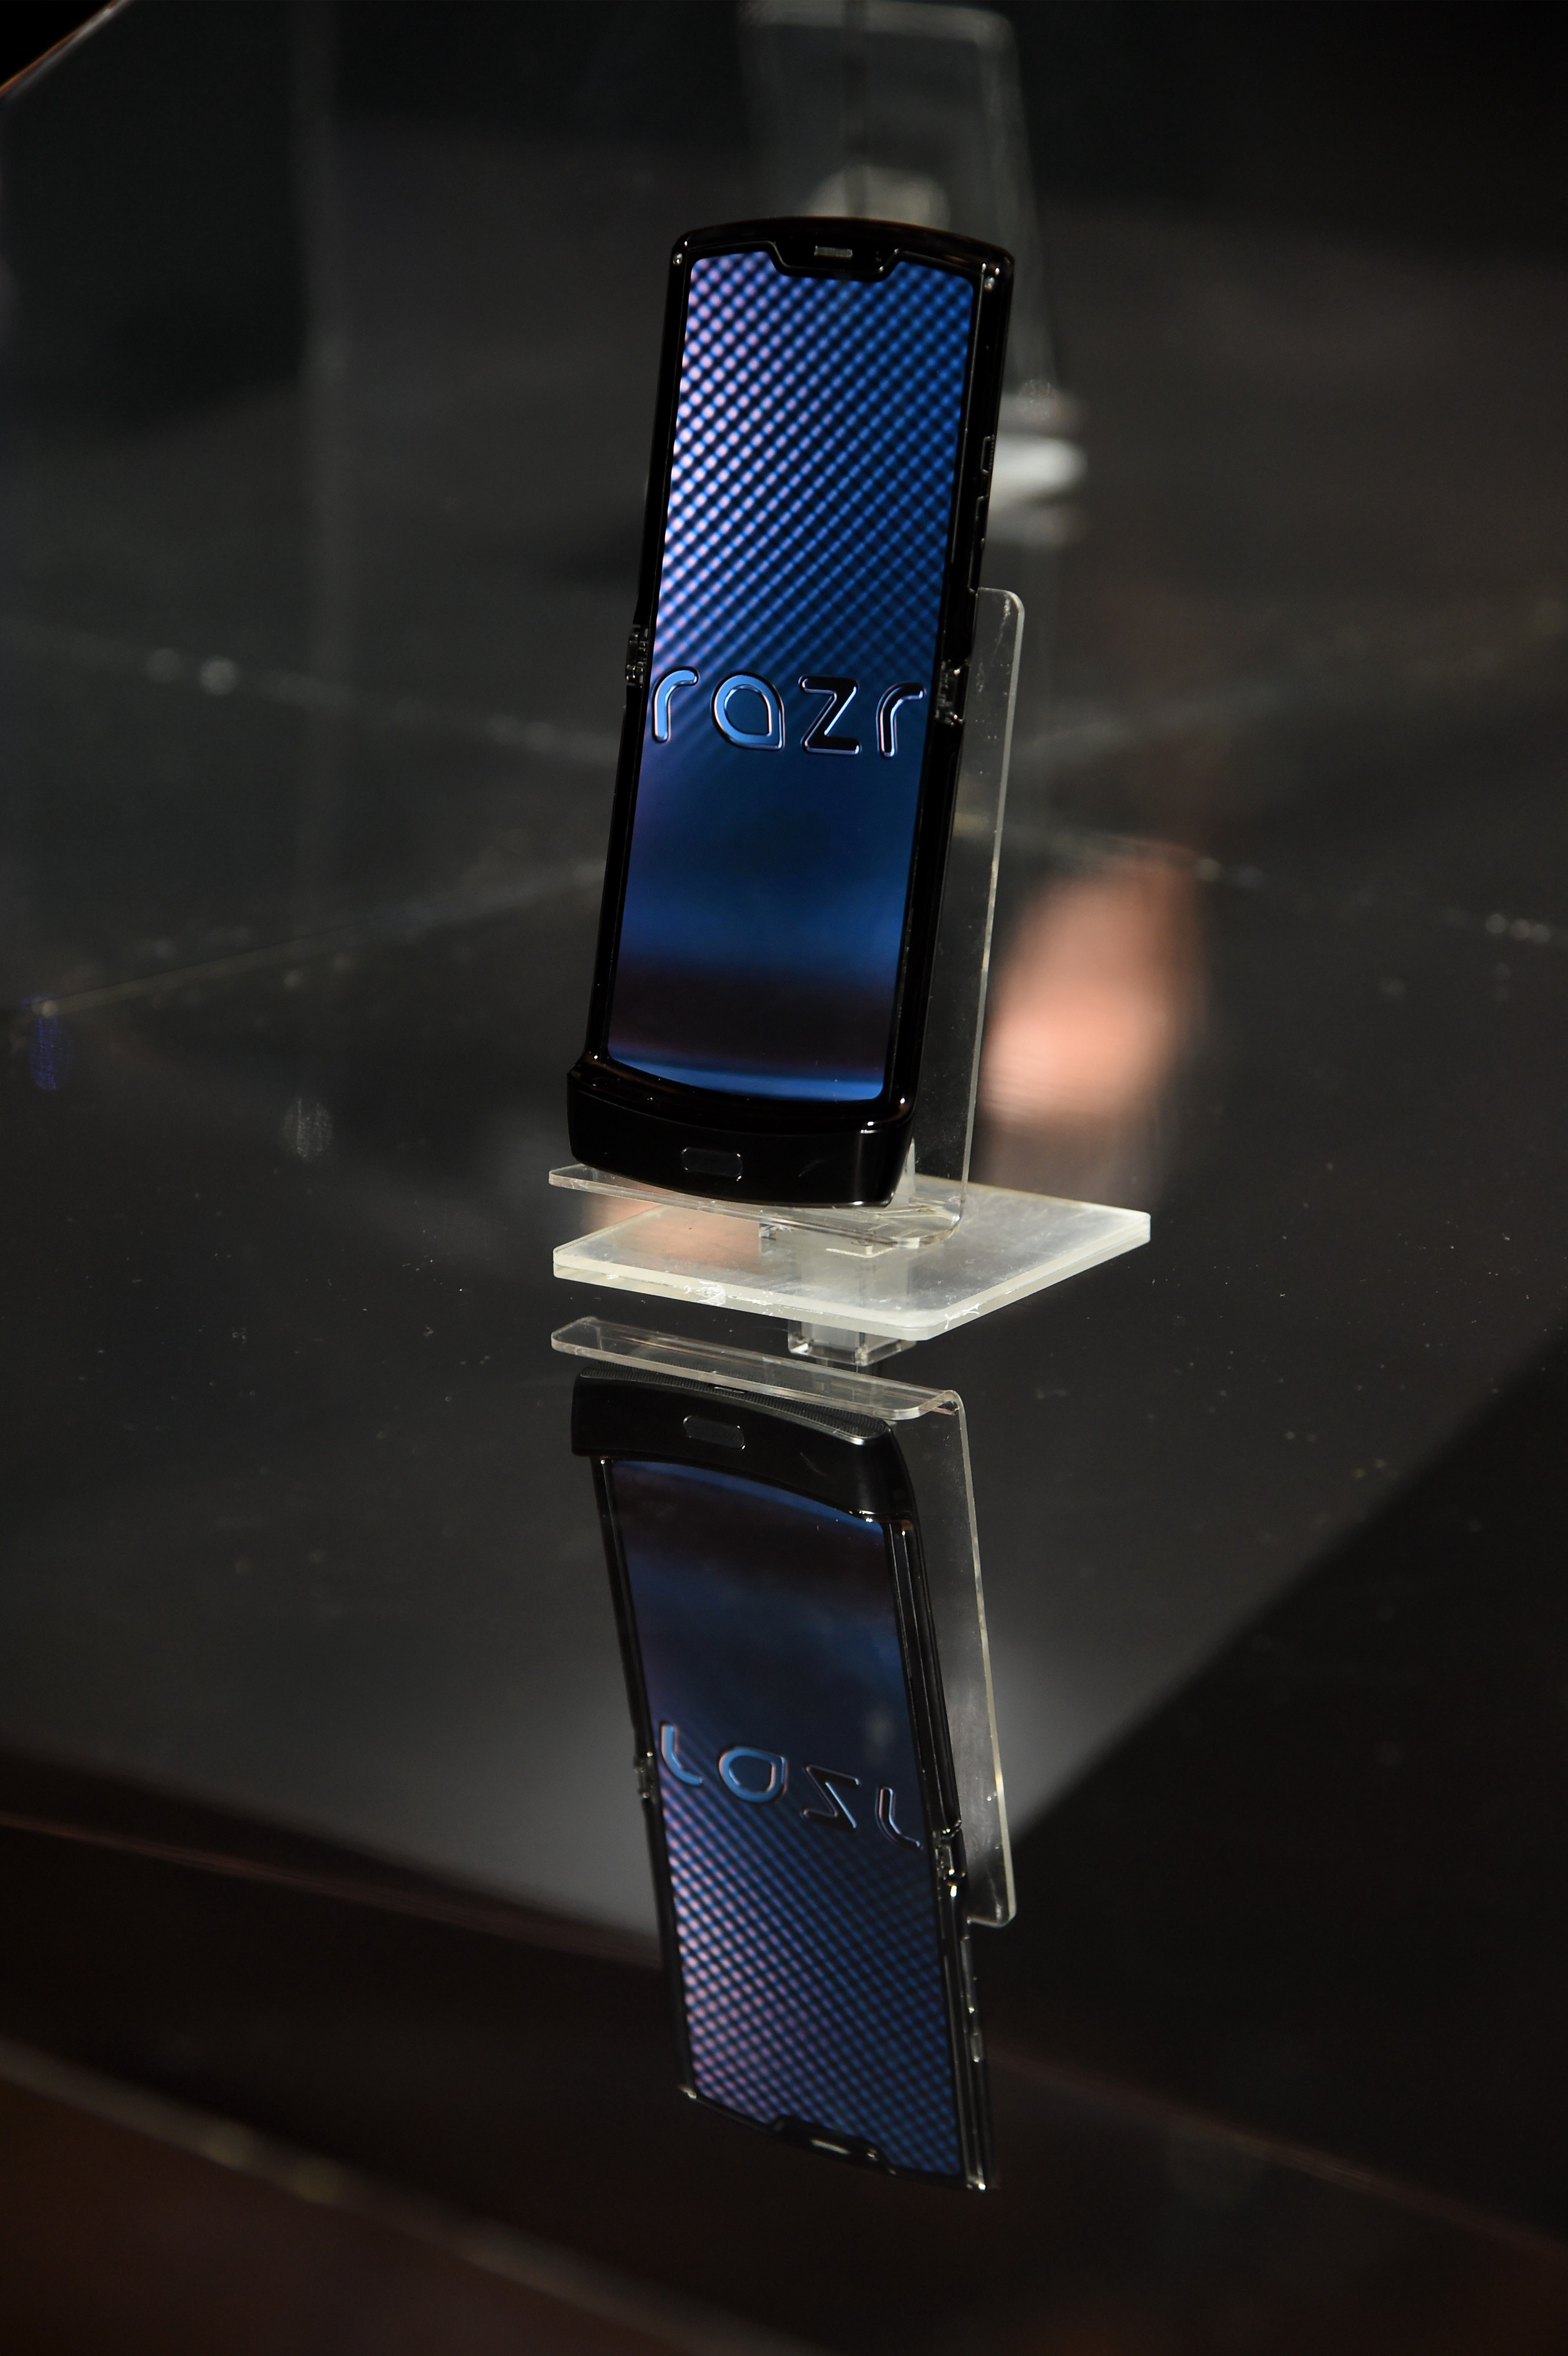 The new Razr phone is displayed during the unveiling of the Razr as a reinvented icon.